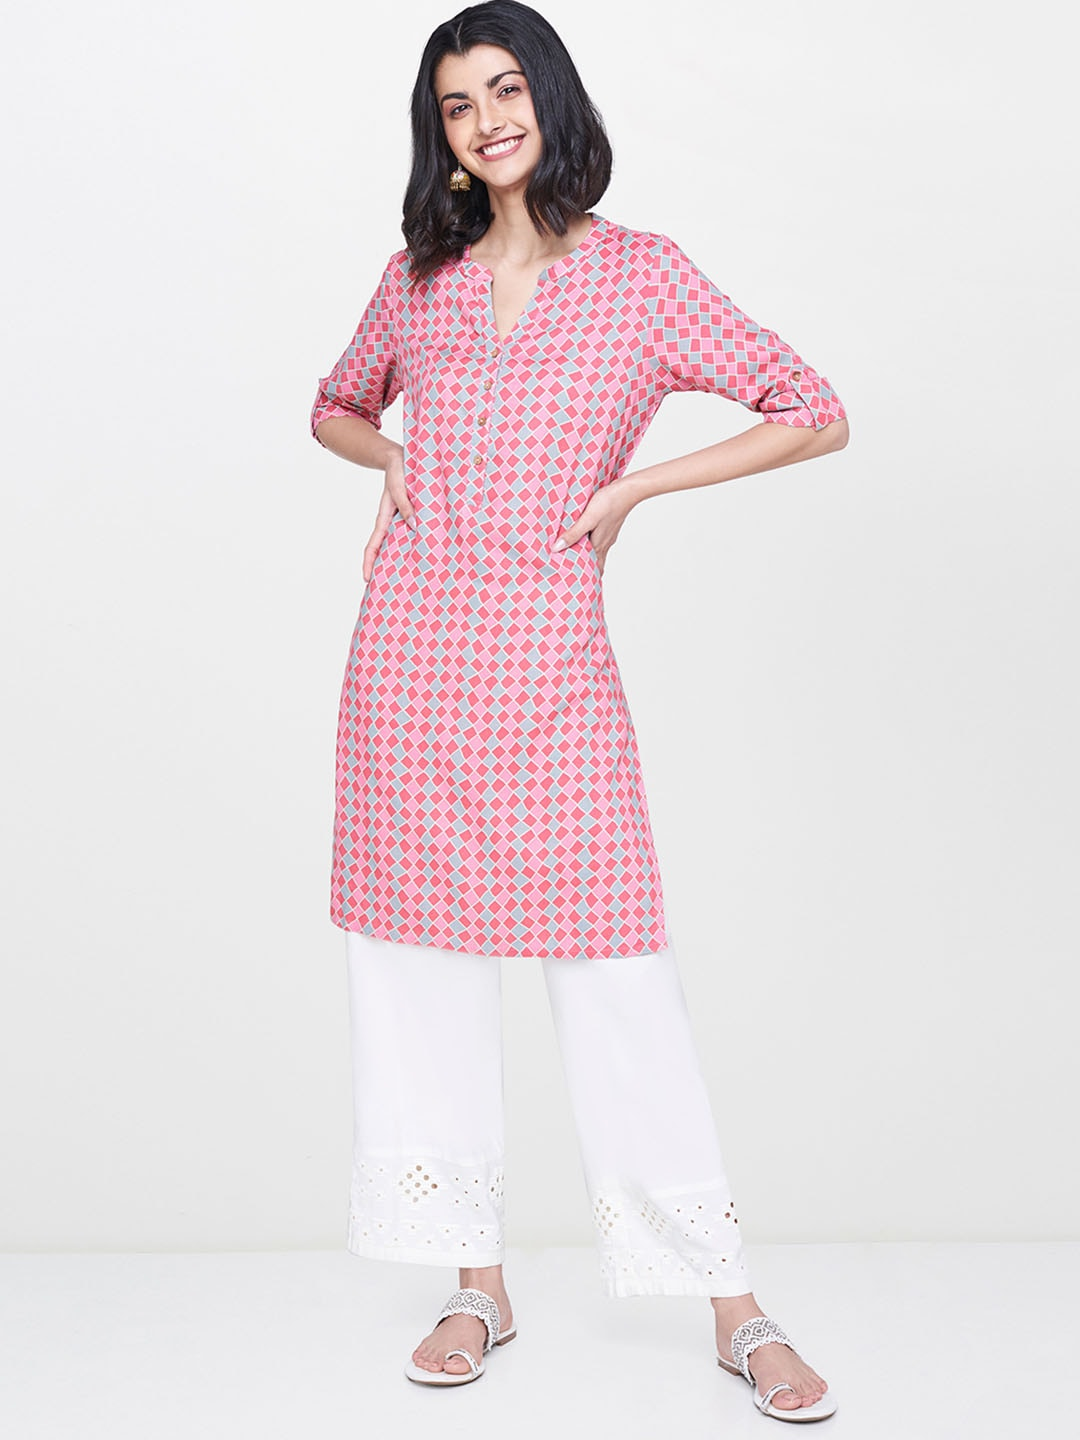 2abc1c4a52 Tunics for Women - Buy Tunic Tops For Women Online in India